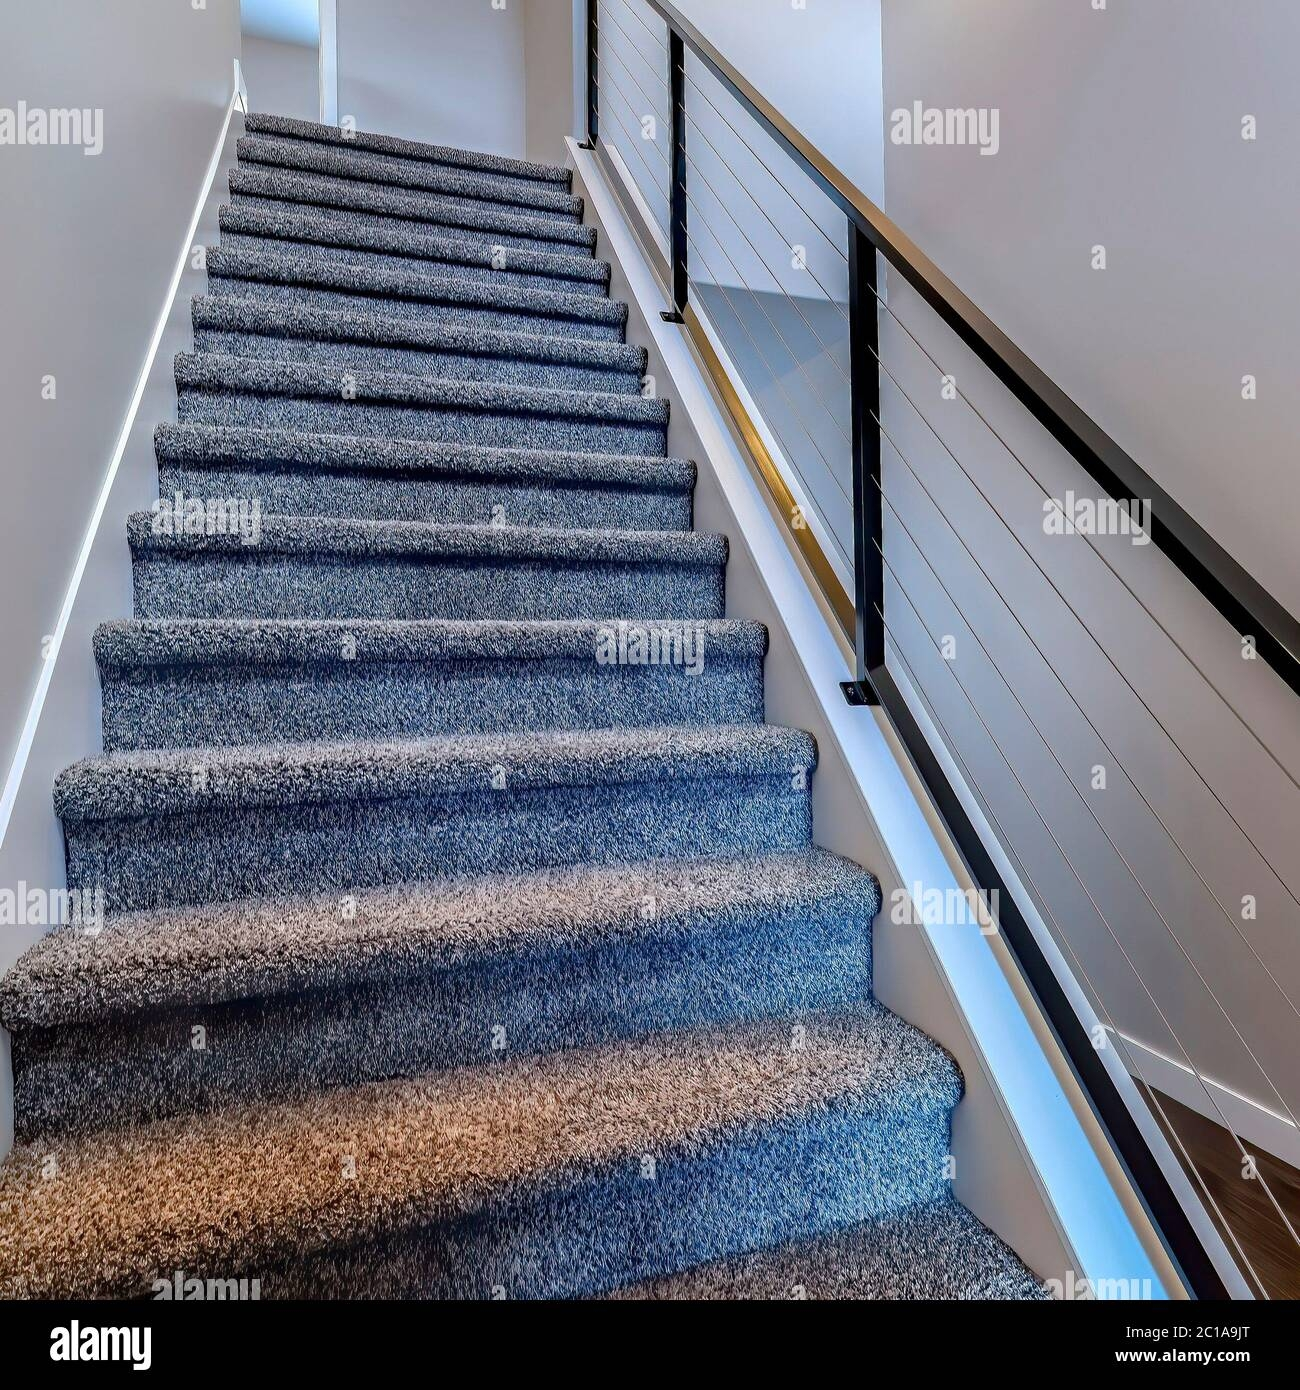 Square Indoor Stairs Of Home With Metal Handrail And Gray Carpet | Square Handrail For Stairs | Balustrade | Outdoor | Hand Rail | Low Cost | Residential